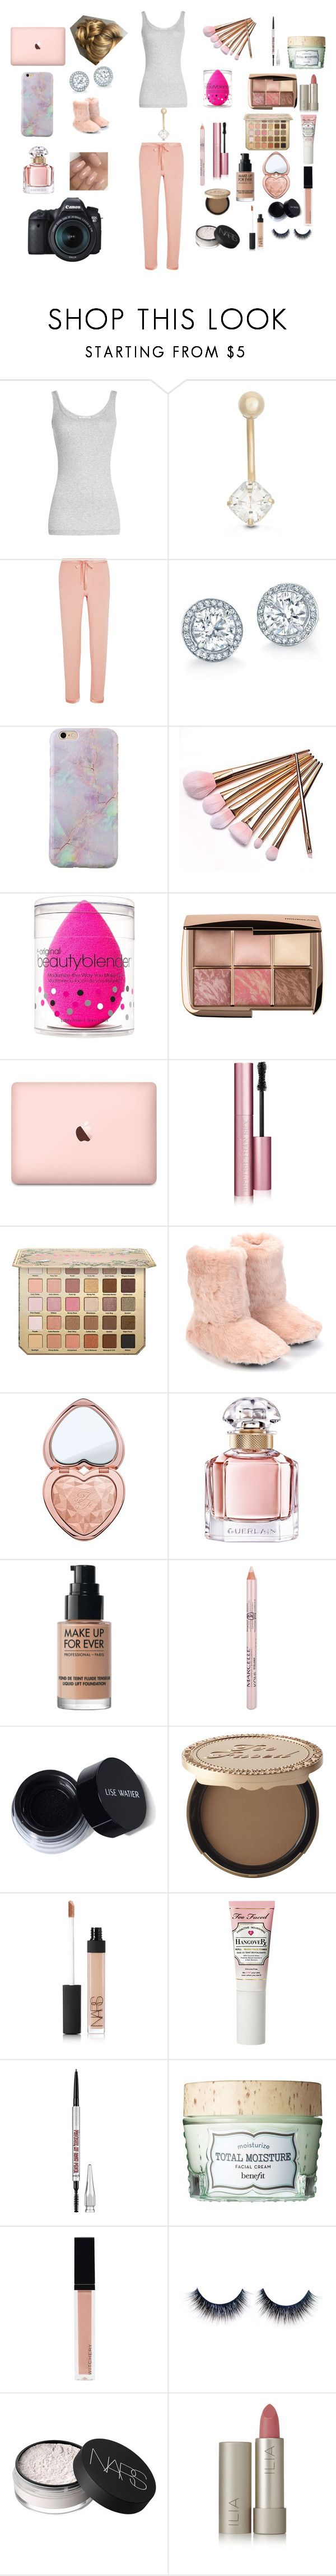 """""""Makeup Tutorial"""" by fashionistagirl989898 ❤ liked on Polyvore featuring Vince, Gioelli, I.D. SARRIERI, beautyblender, Too Faced Cosmetics, Bedhead Pajamas, Guerlain, MAKE UP FOR EVER, NARS Cosmetics and Benefit"""